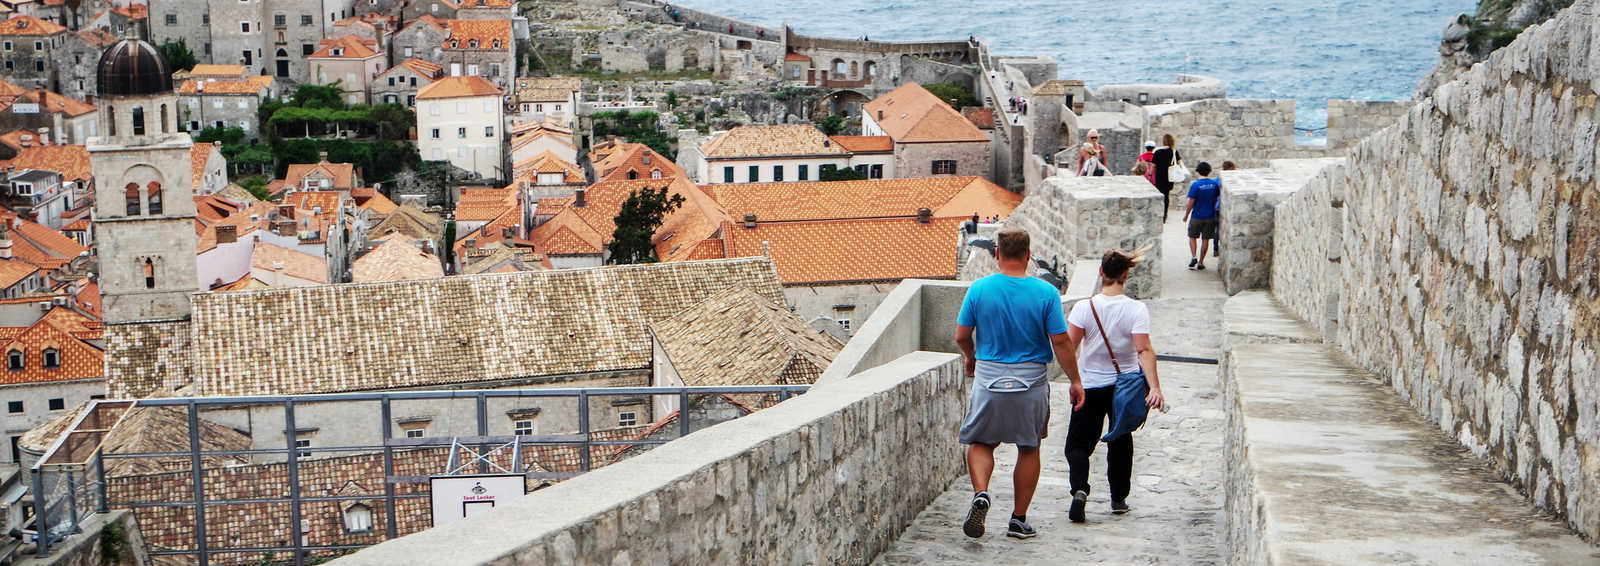 Walking the walls in Dubrovnik